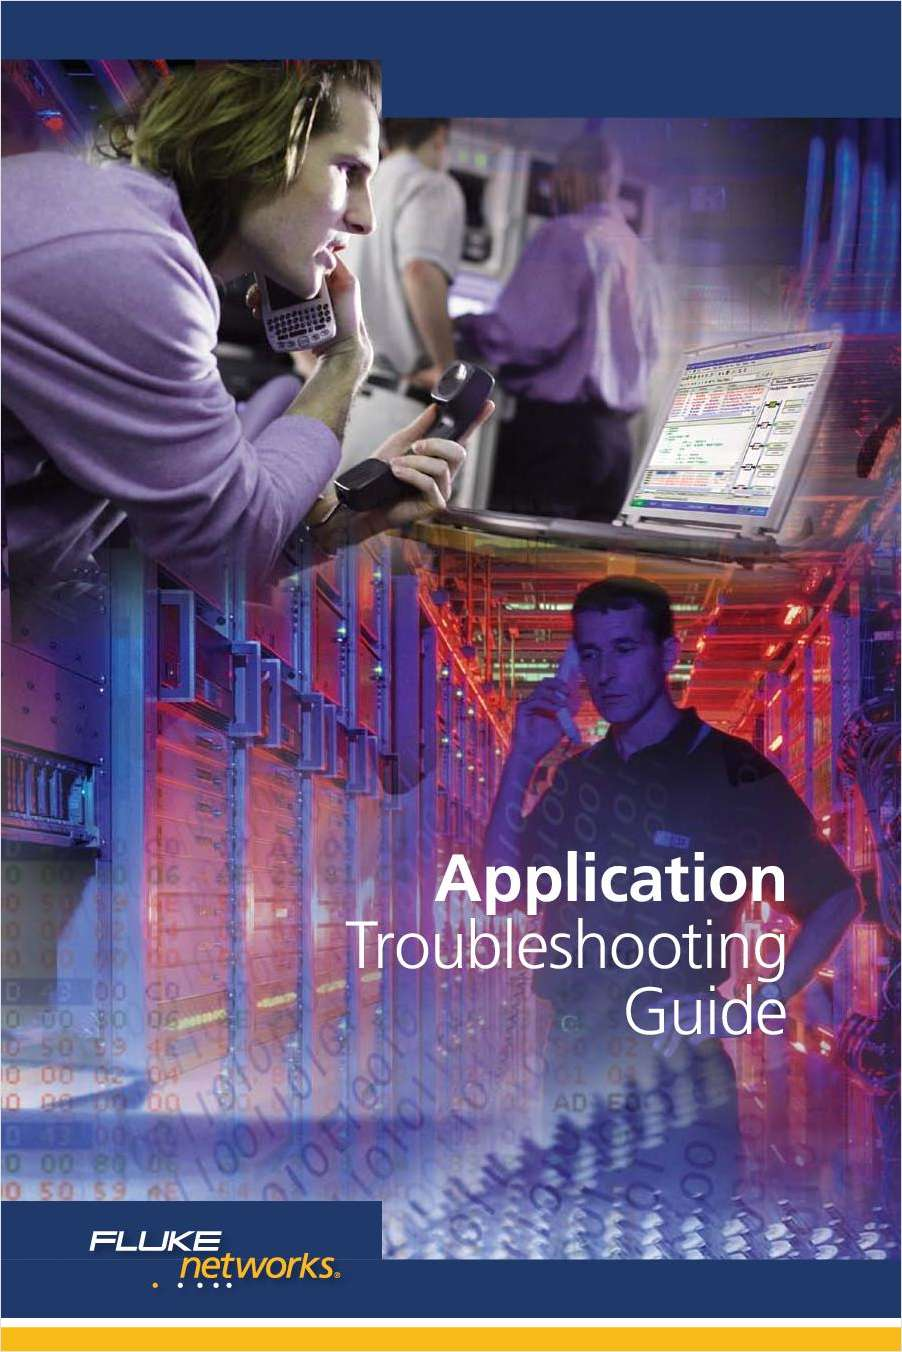 Guide to Troubleshooting Application Problems